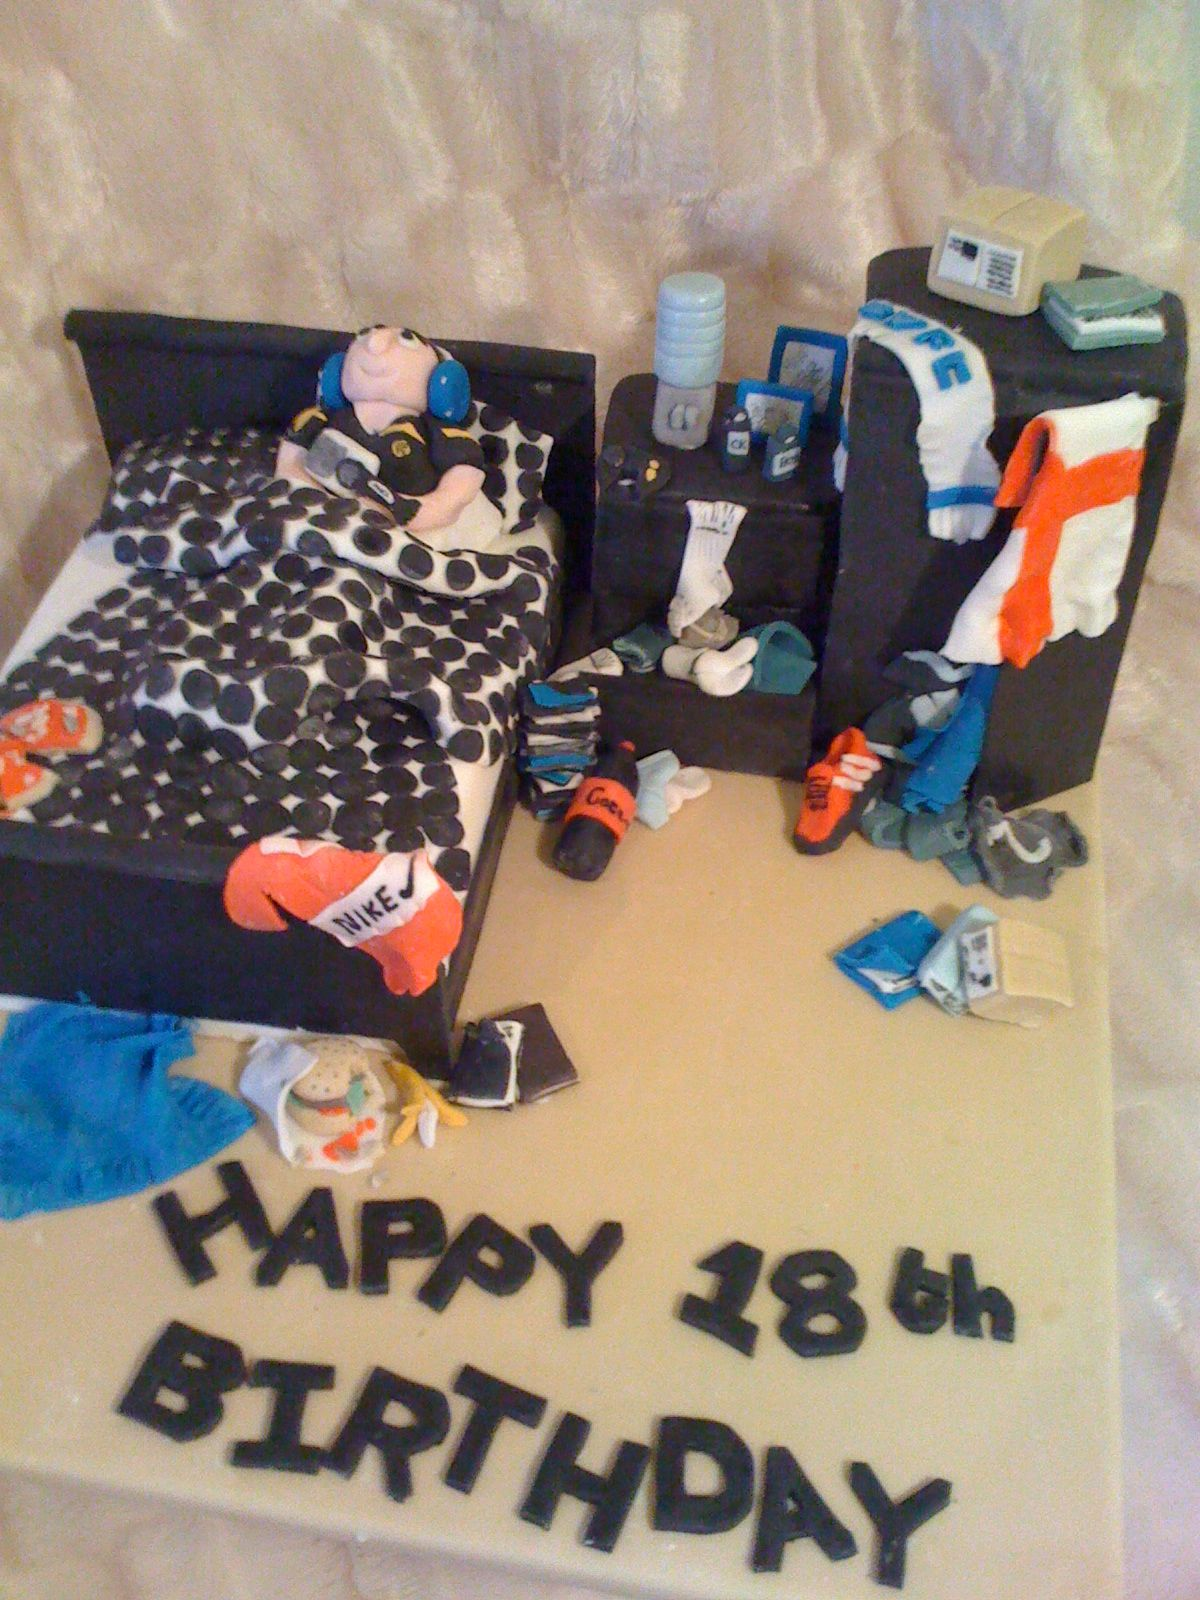 18th Birthday Cake Ideas For Guys : birthday, ideas, Bedroom, Birthday, Picture, Cake,